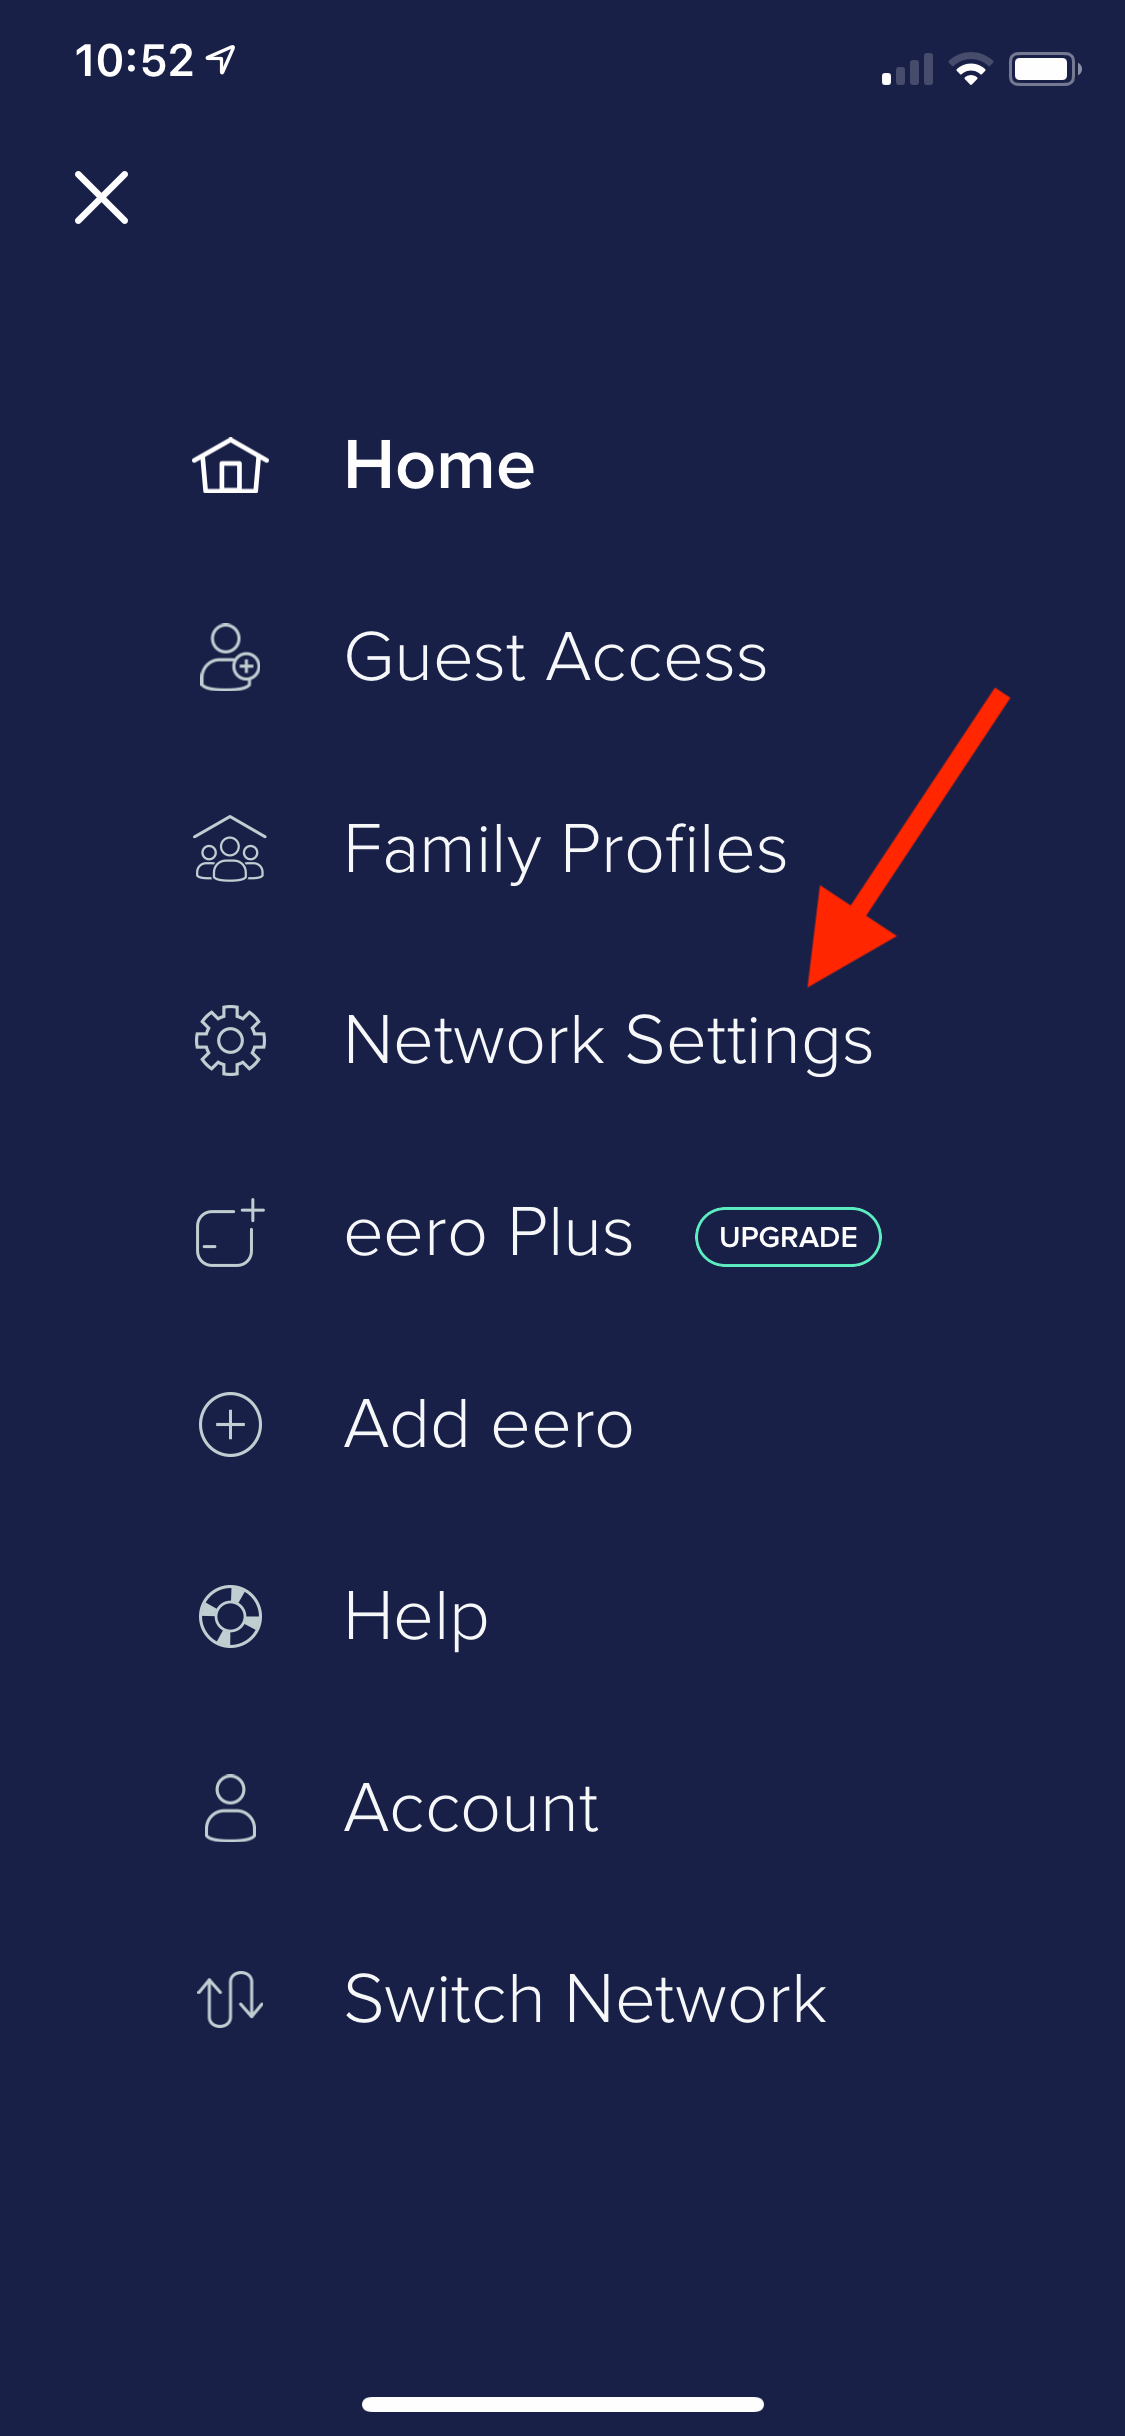 Touch Network Settings